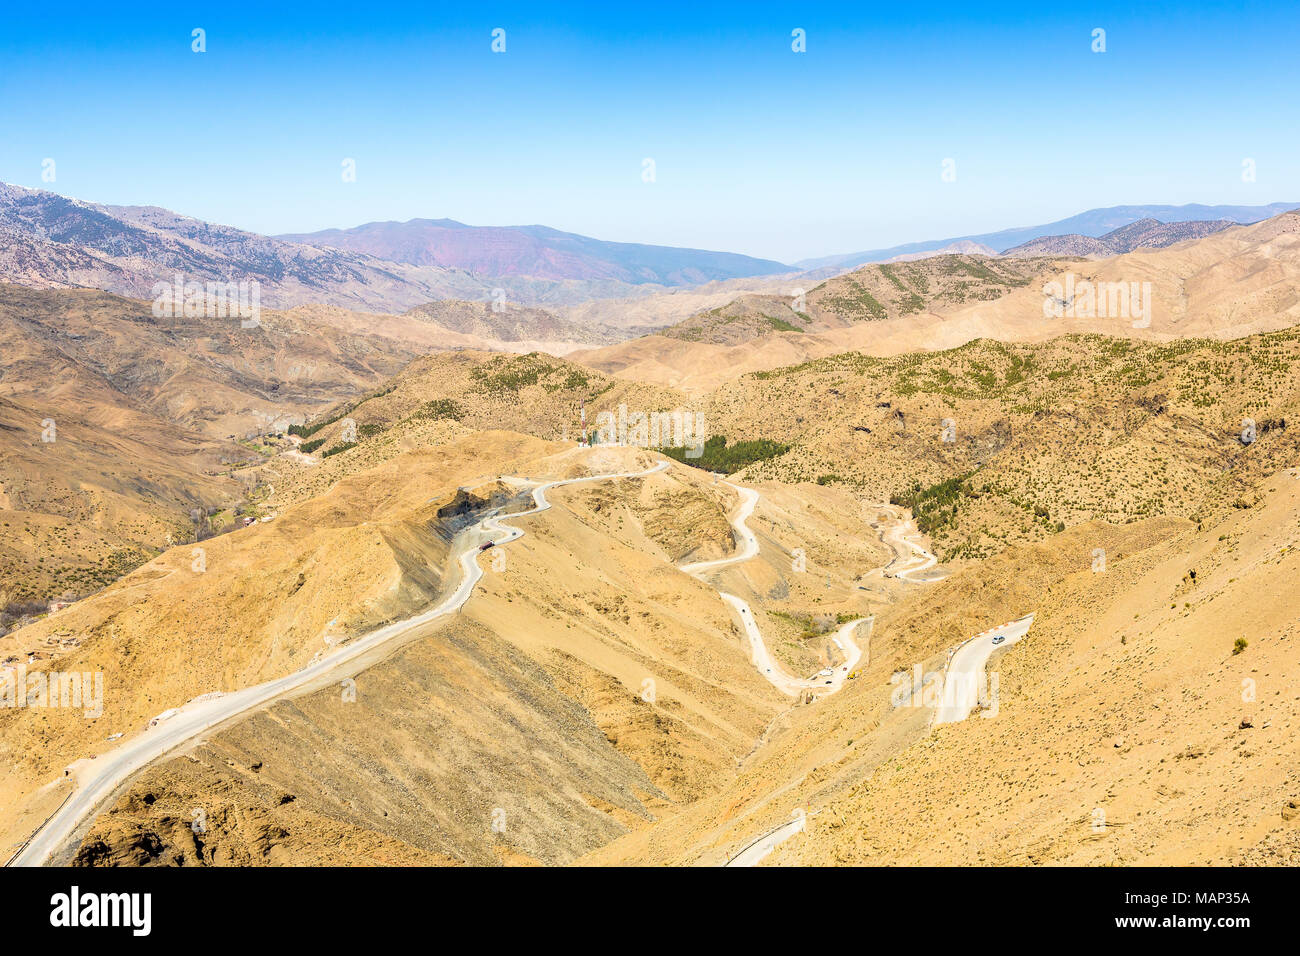 Atlas Mountains In Morocco Africa Stock Photo 178735686